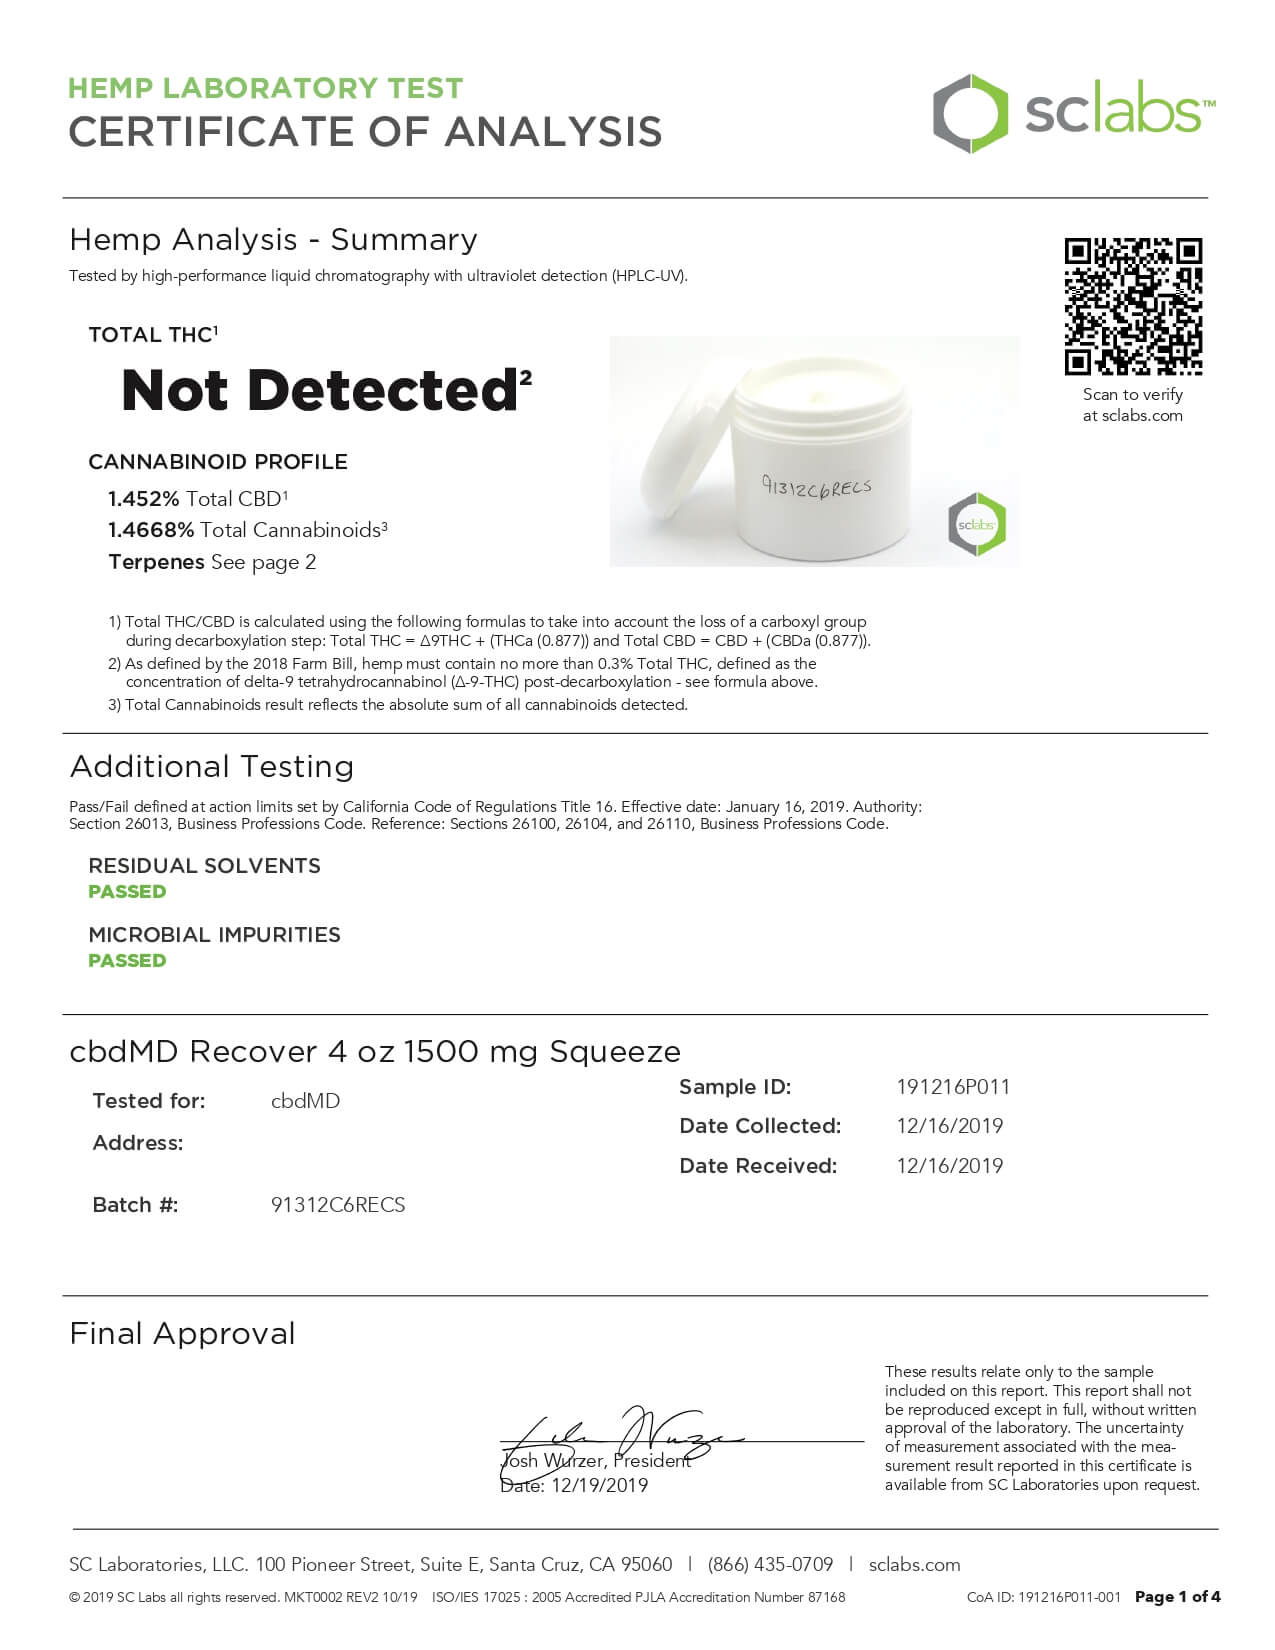 cbdMD CBD Topical Recover Inflammation Cream 4oz Squeeze 1500mg Lab Report